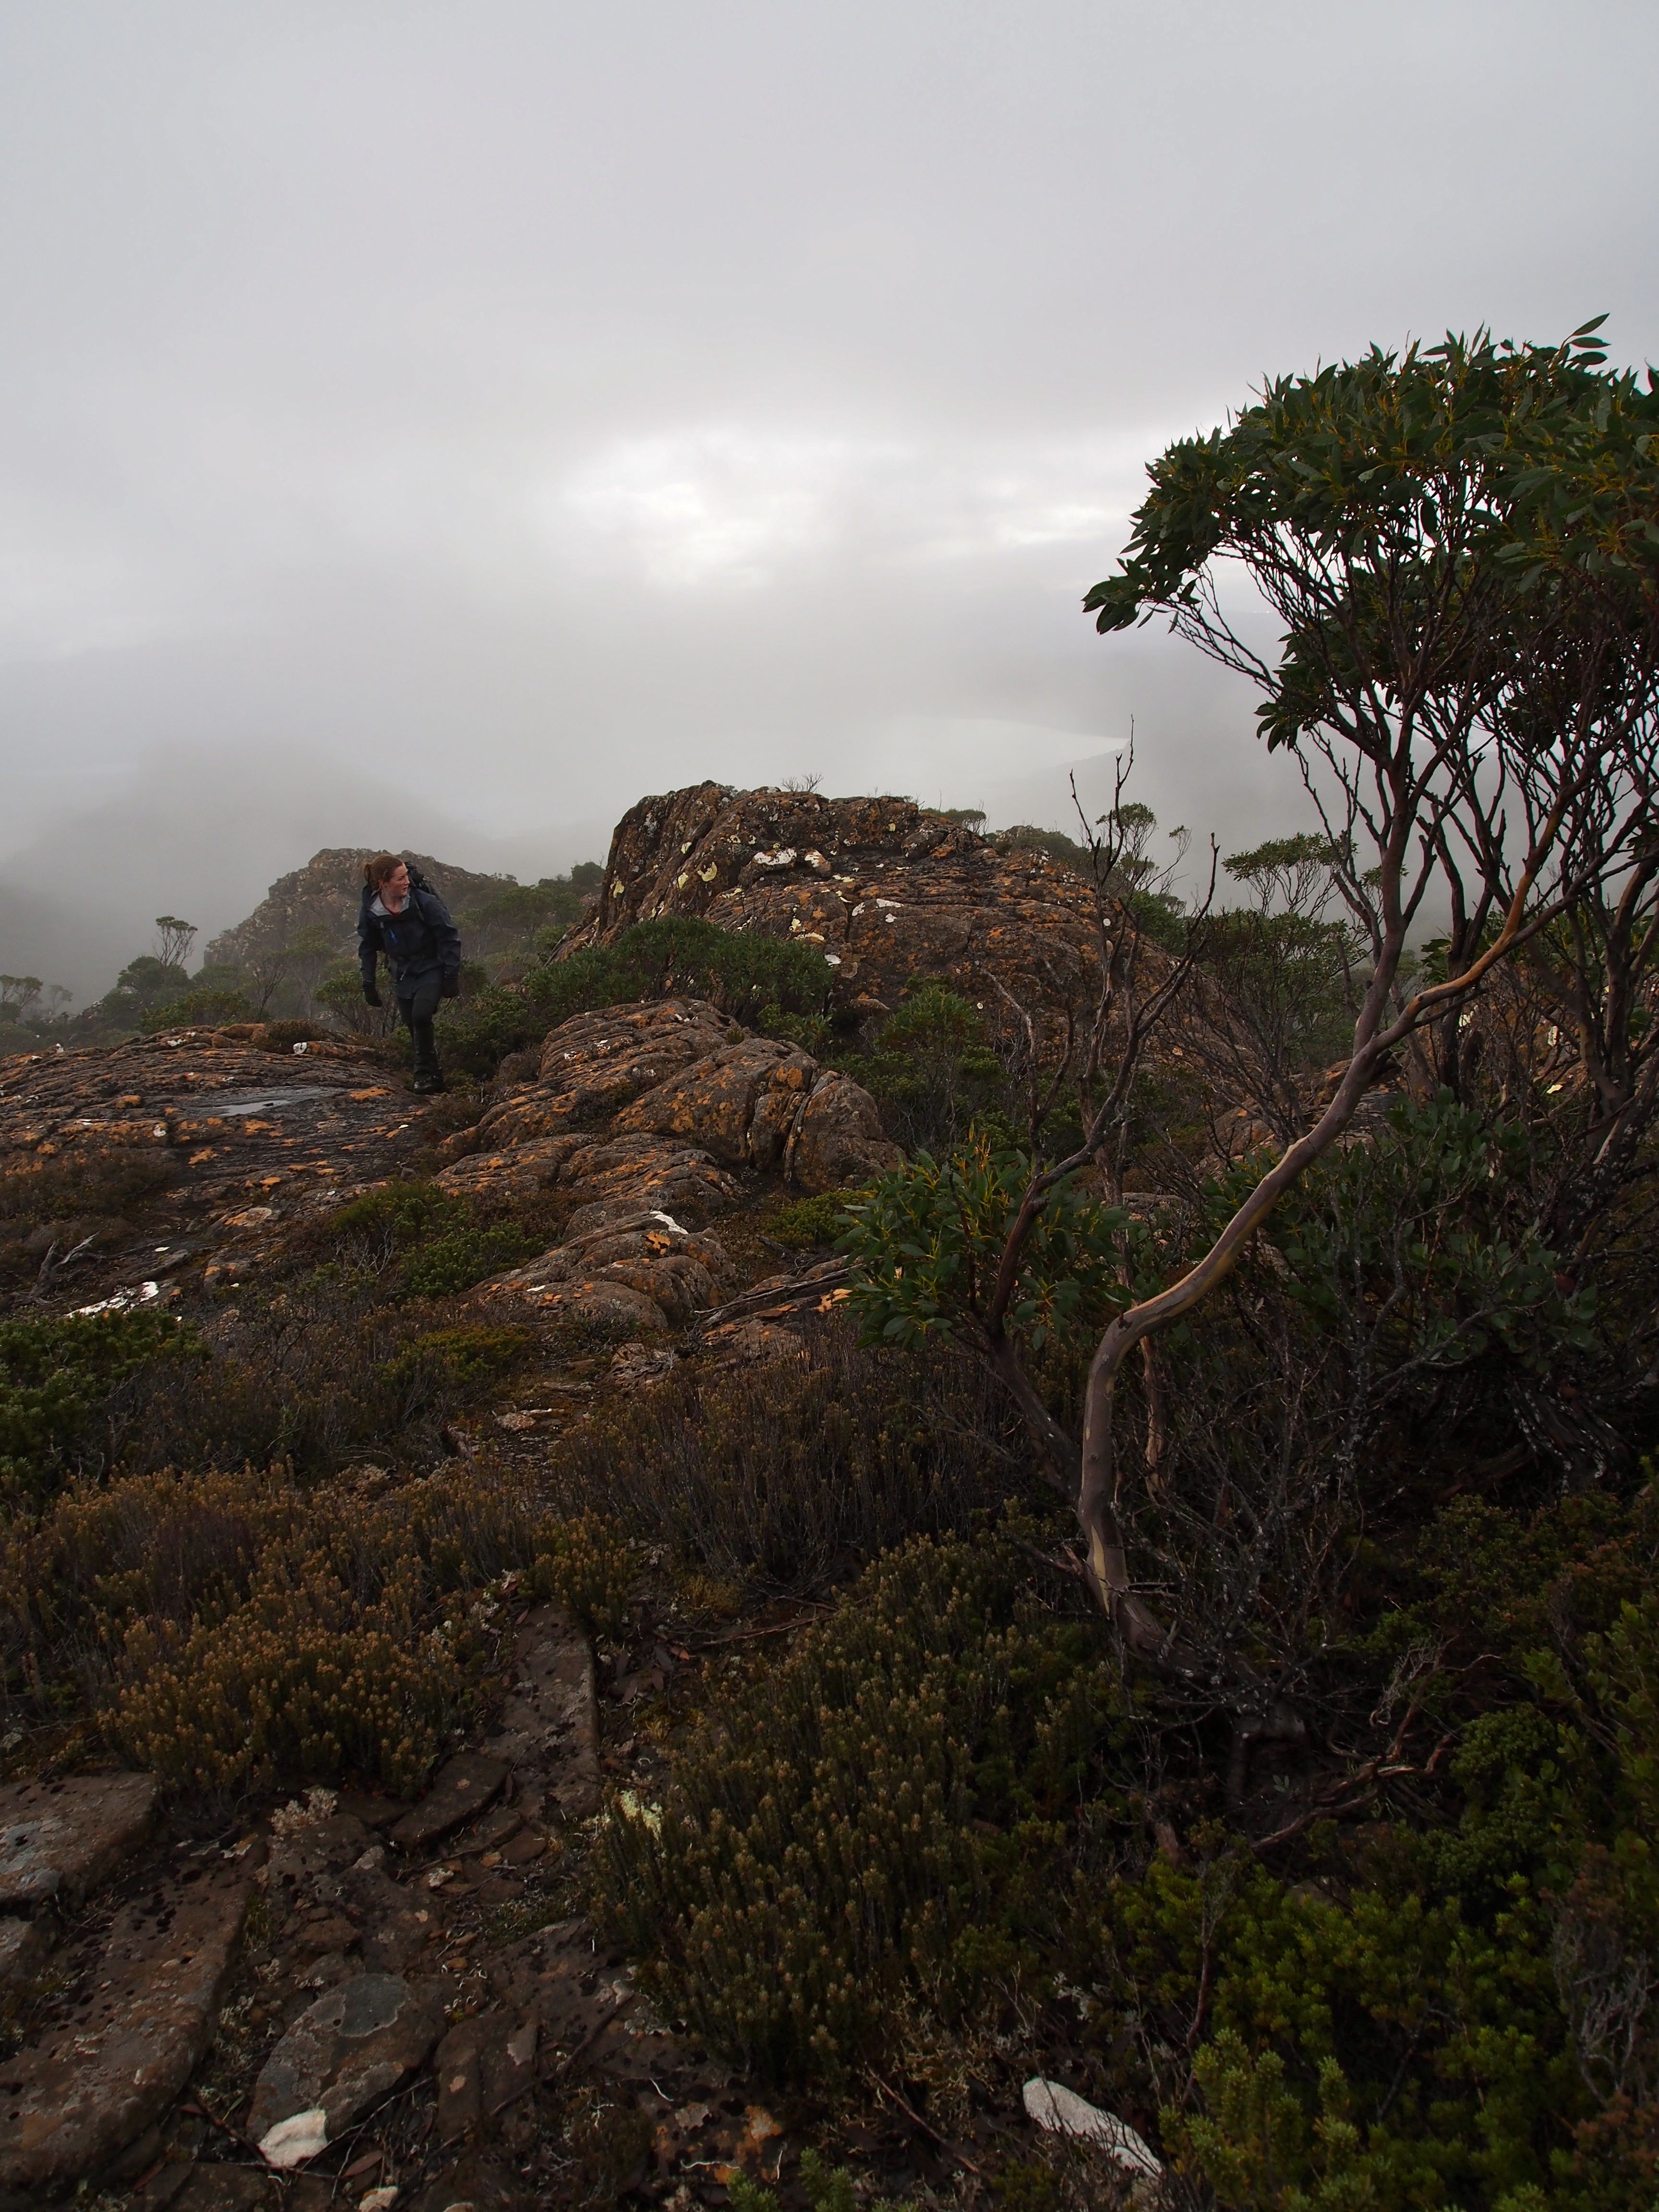 Heading towards the summit.. brighter patches of light amongst the white fog hinting that there's something out there..